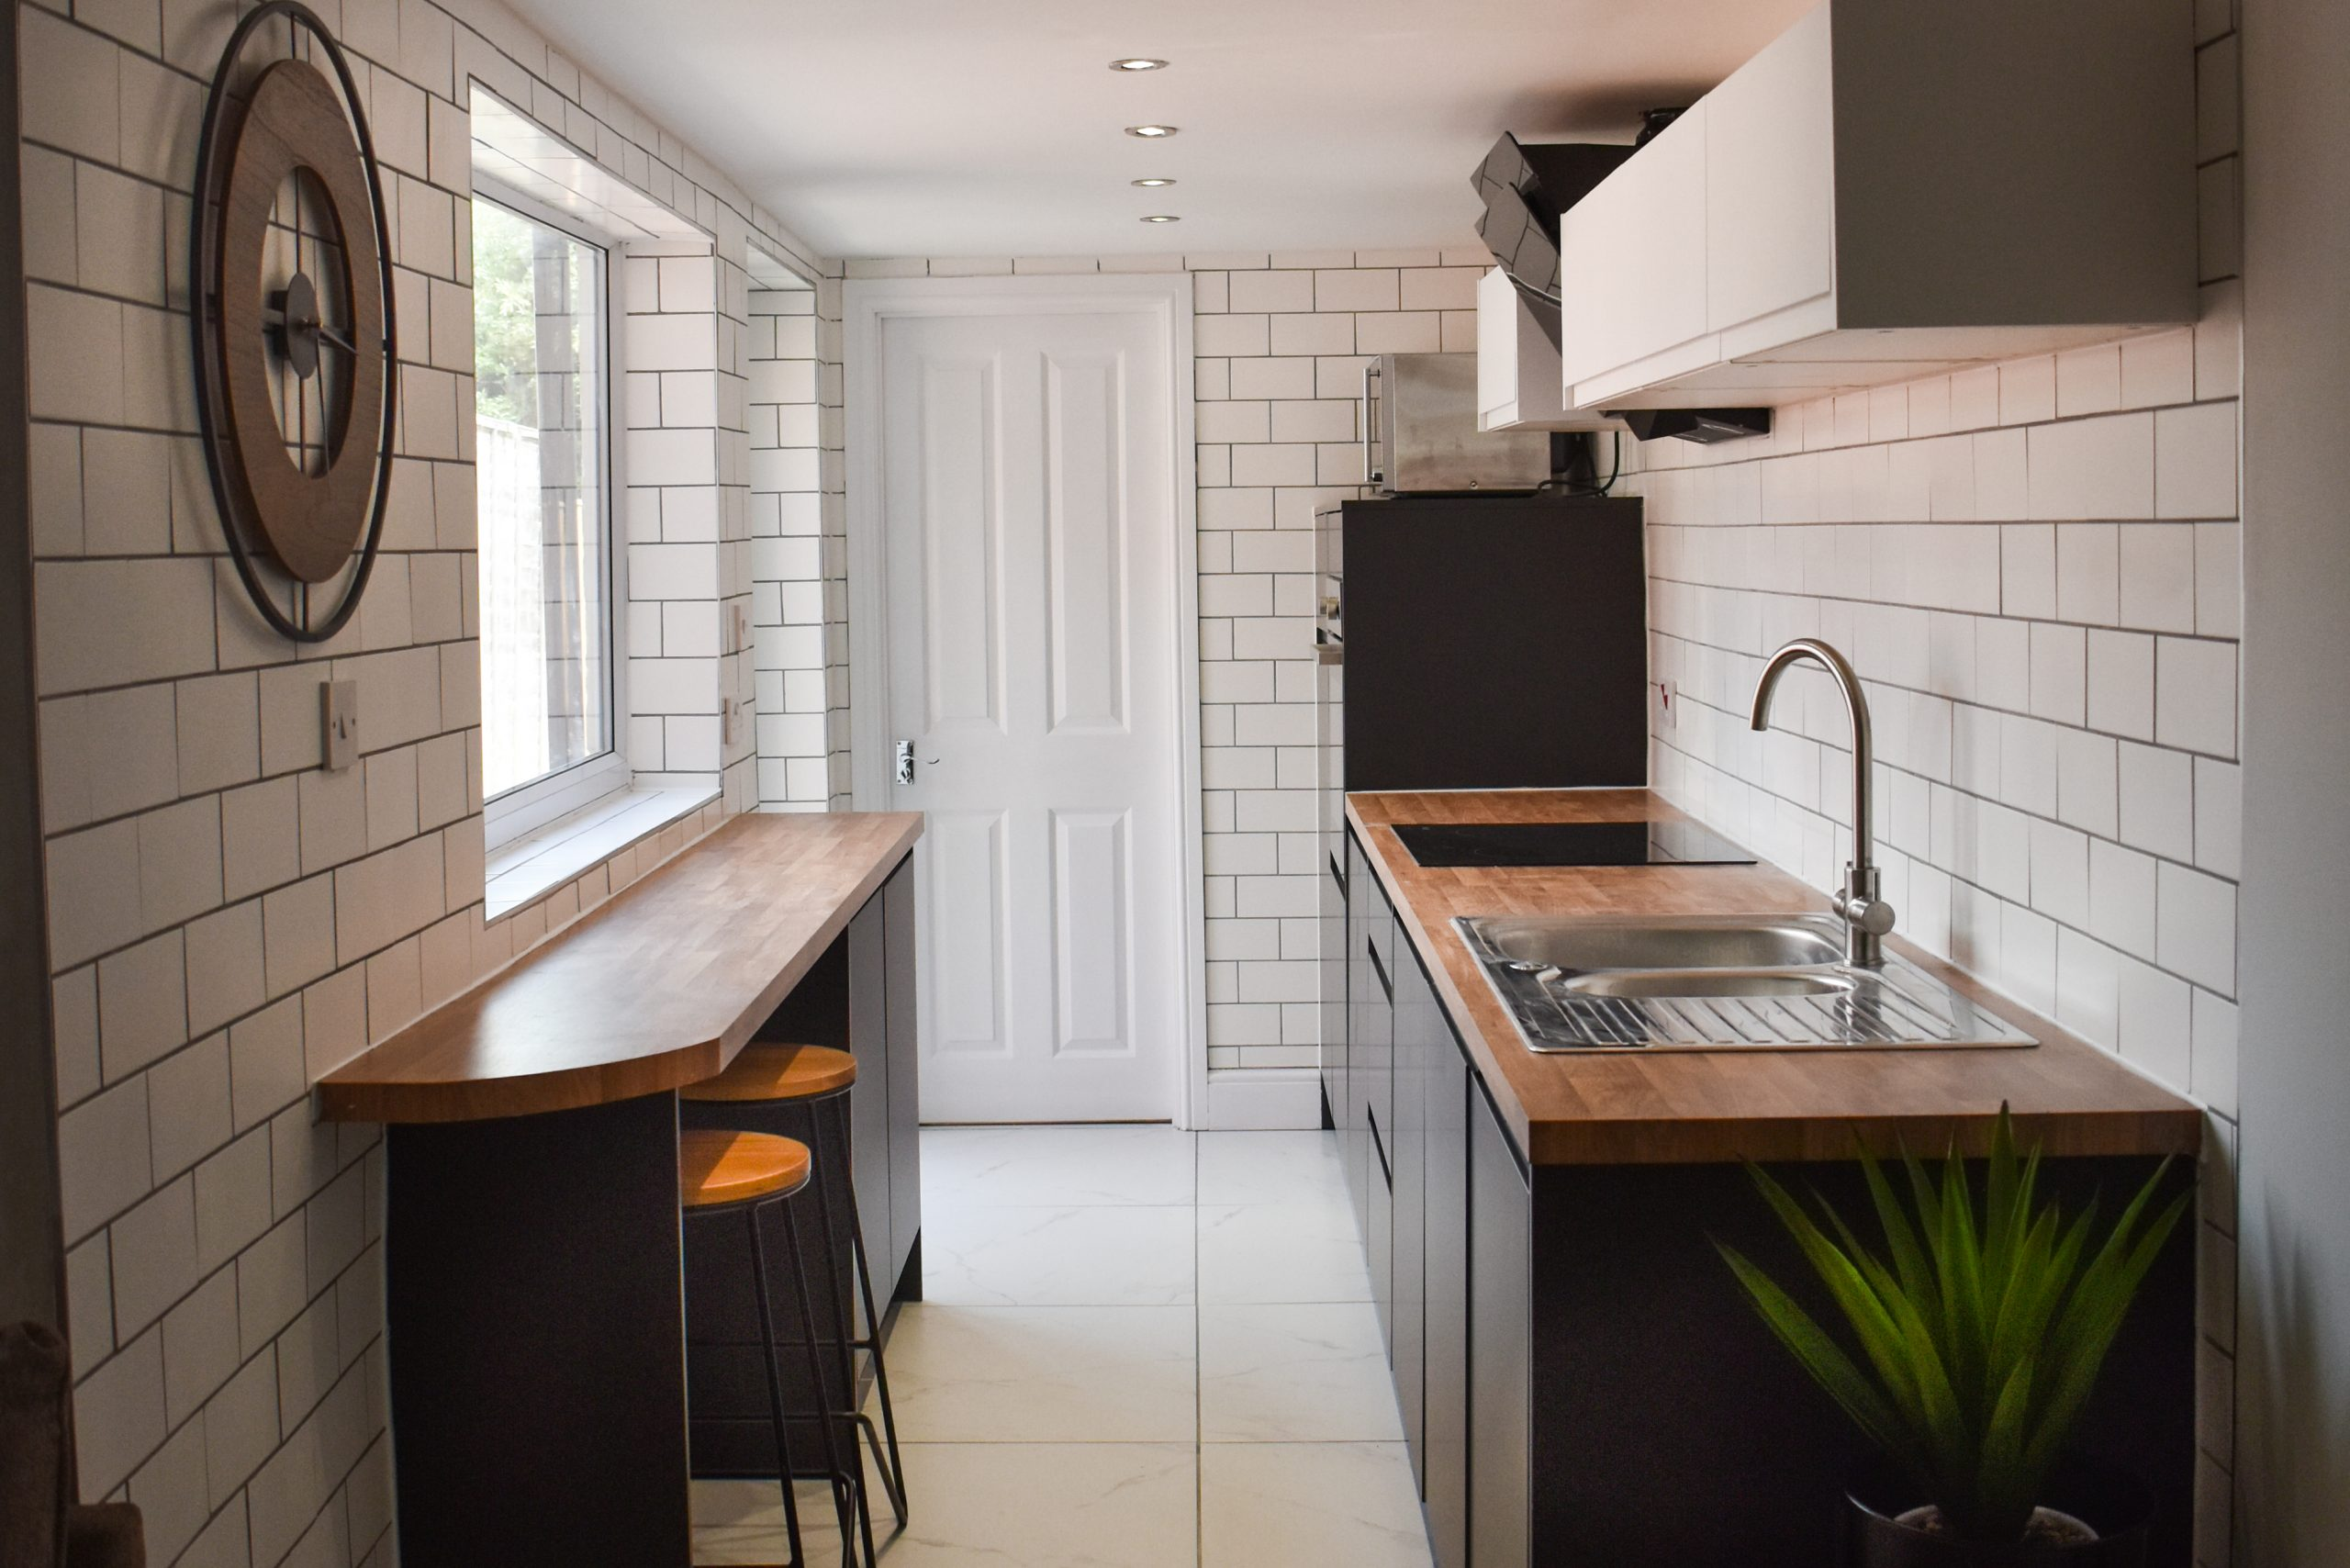 Thesiger Street – 4 Bed